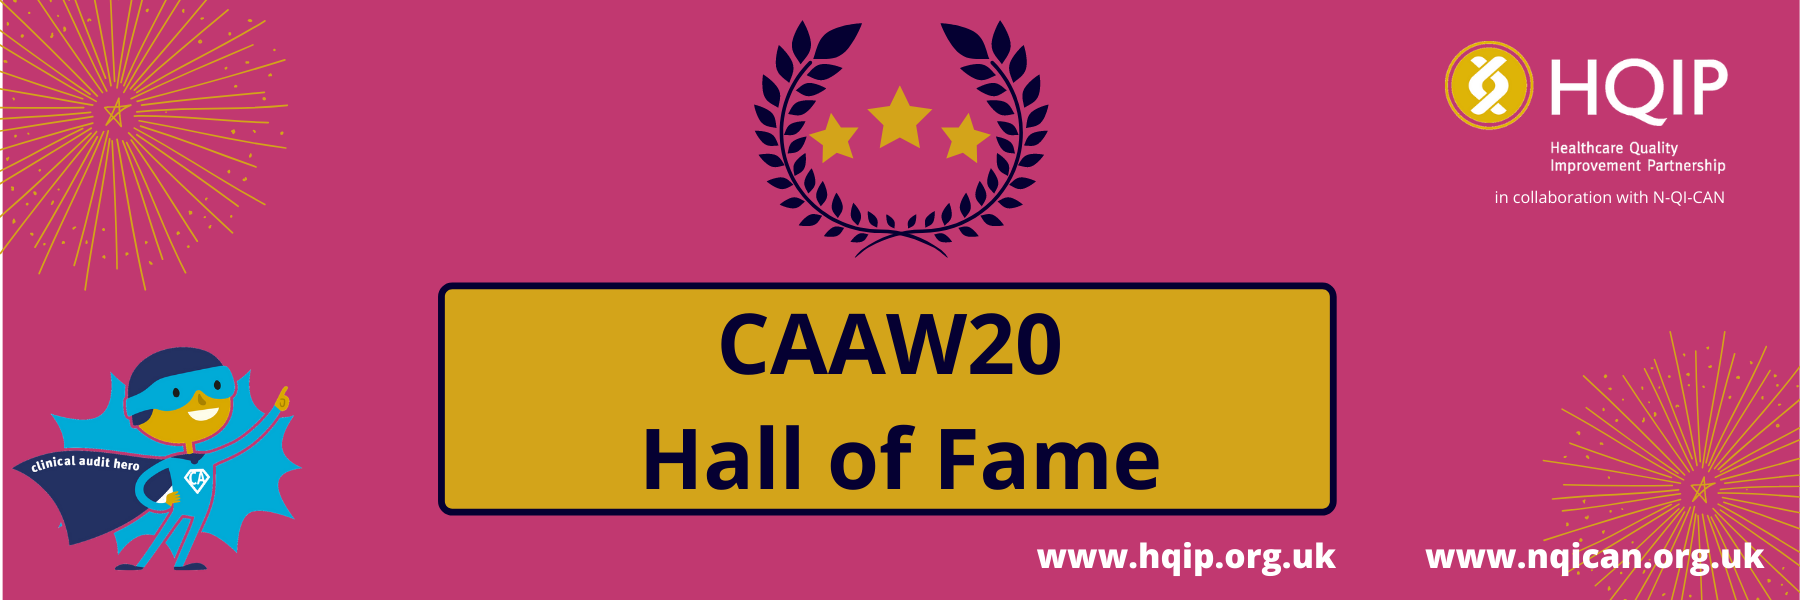 CAAW20 Hall of Fame banner